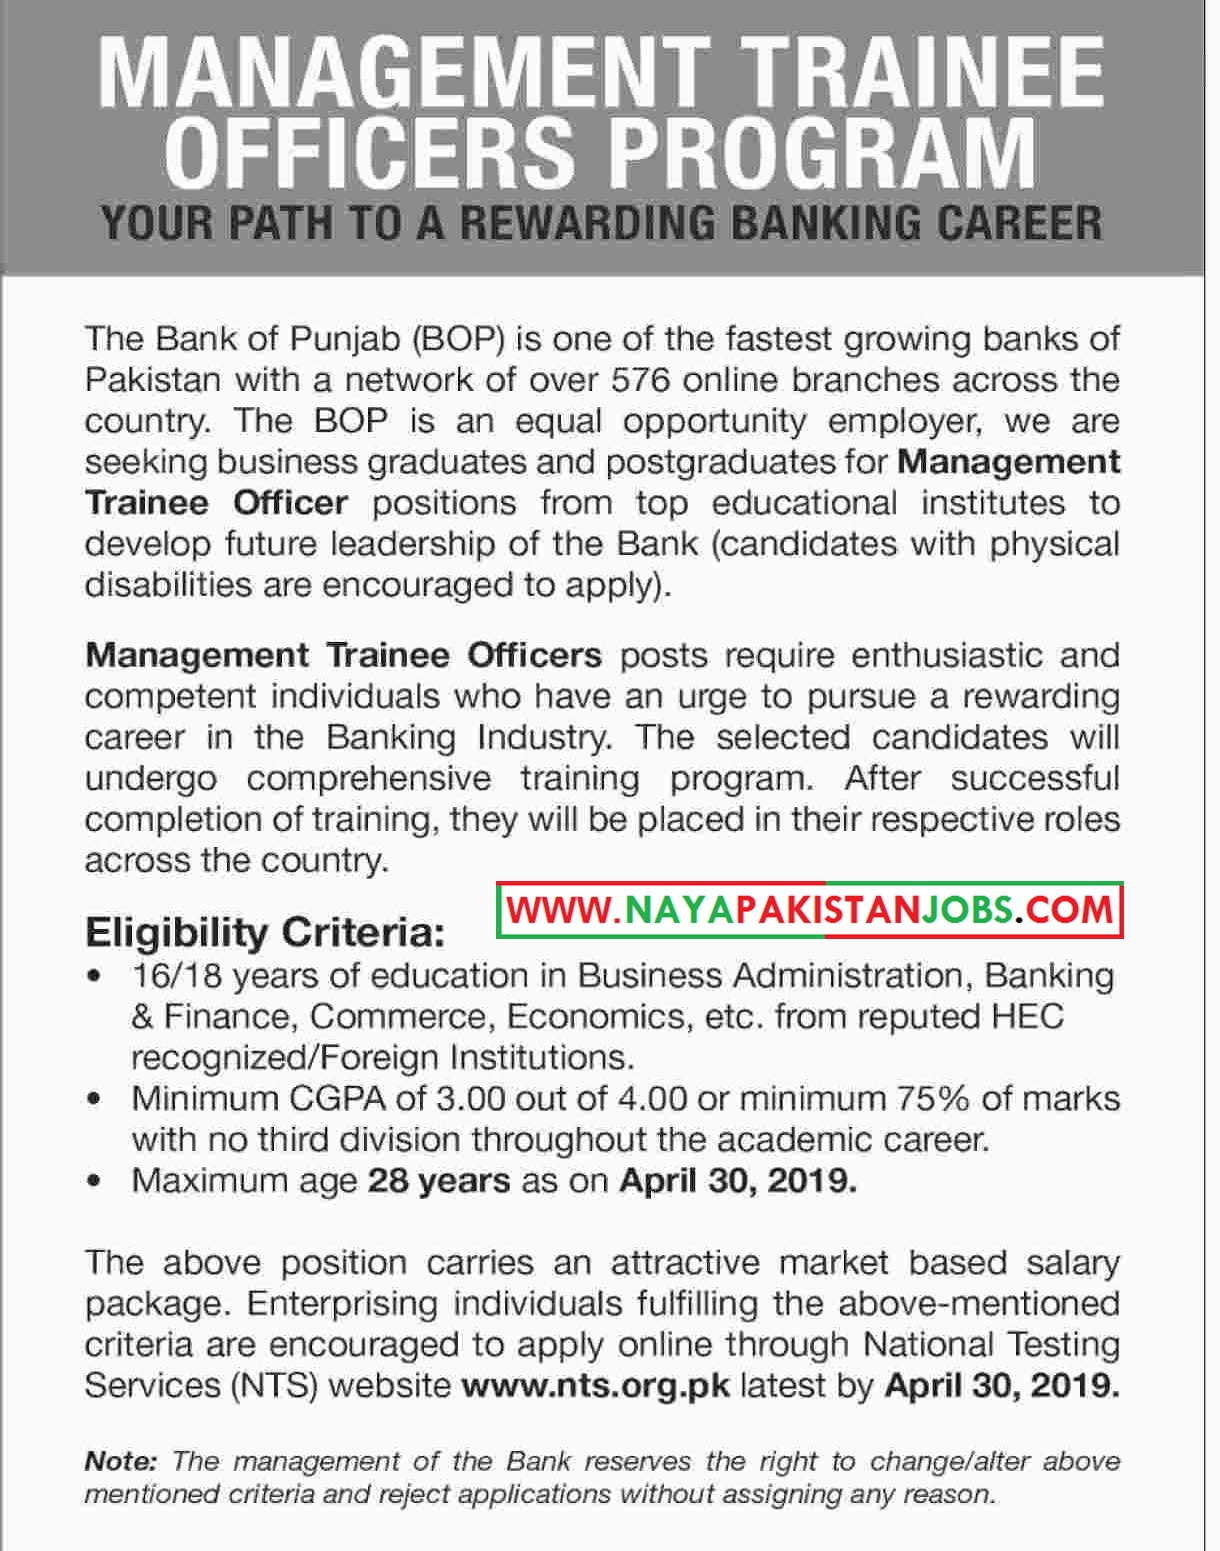 BOP Trainee Officer Program 2019, The Bank Of Punjab Trainee Officer Program 2019 April